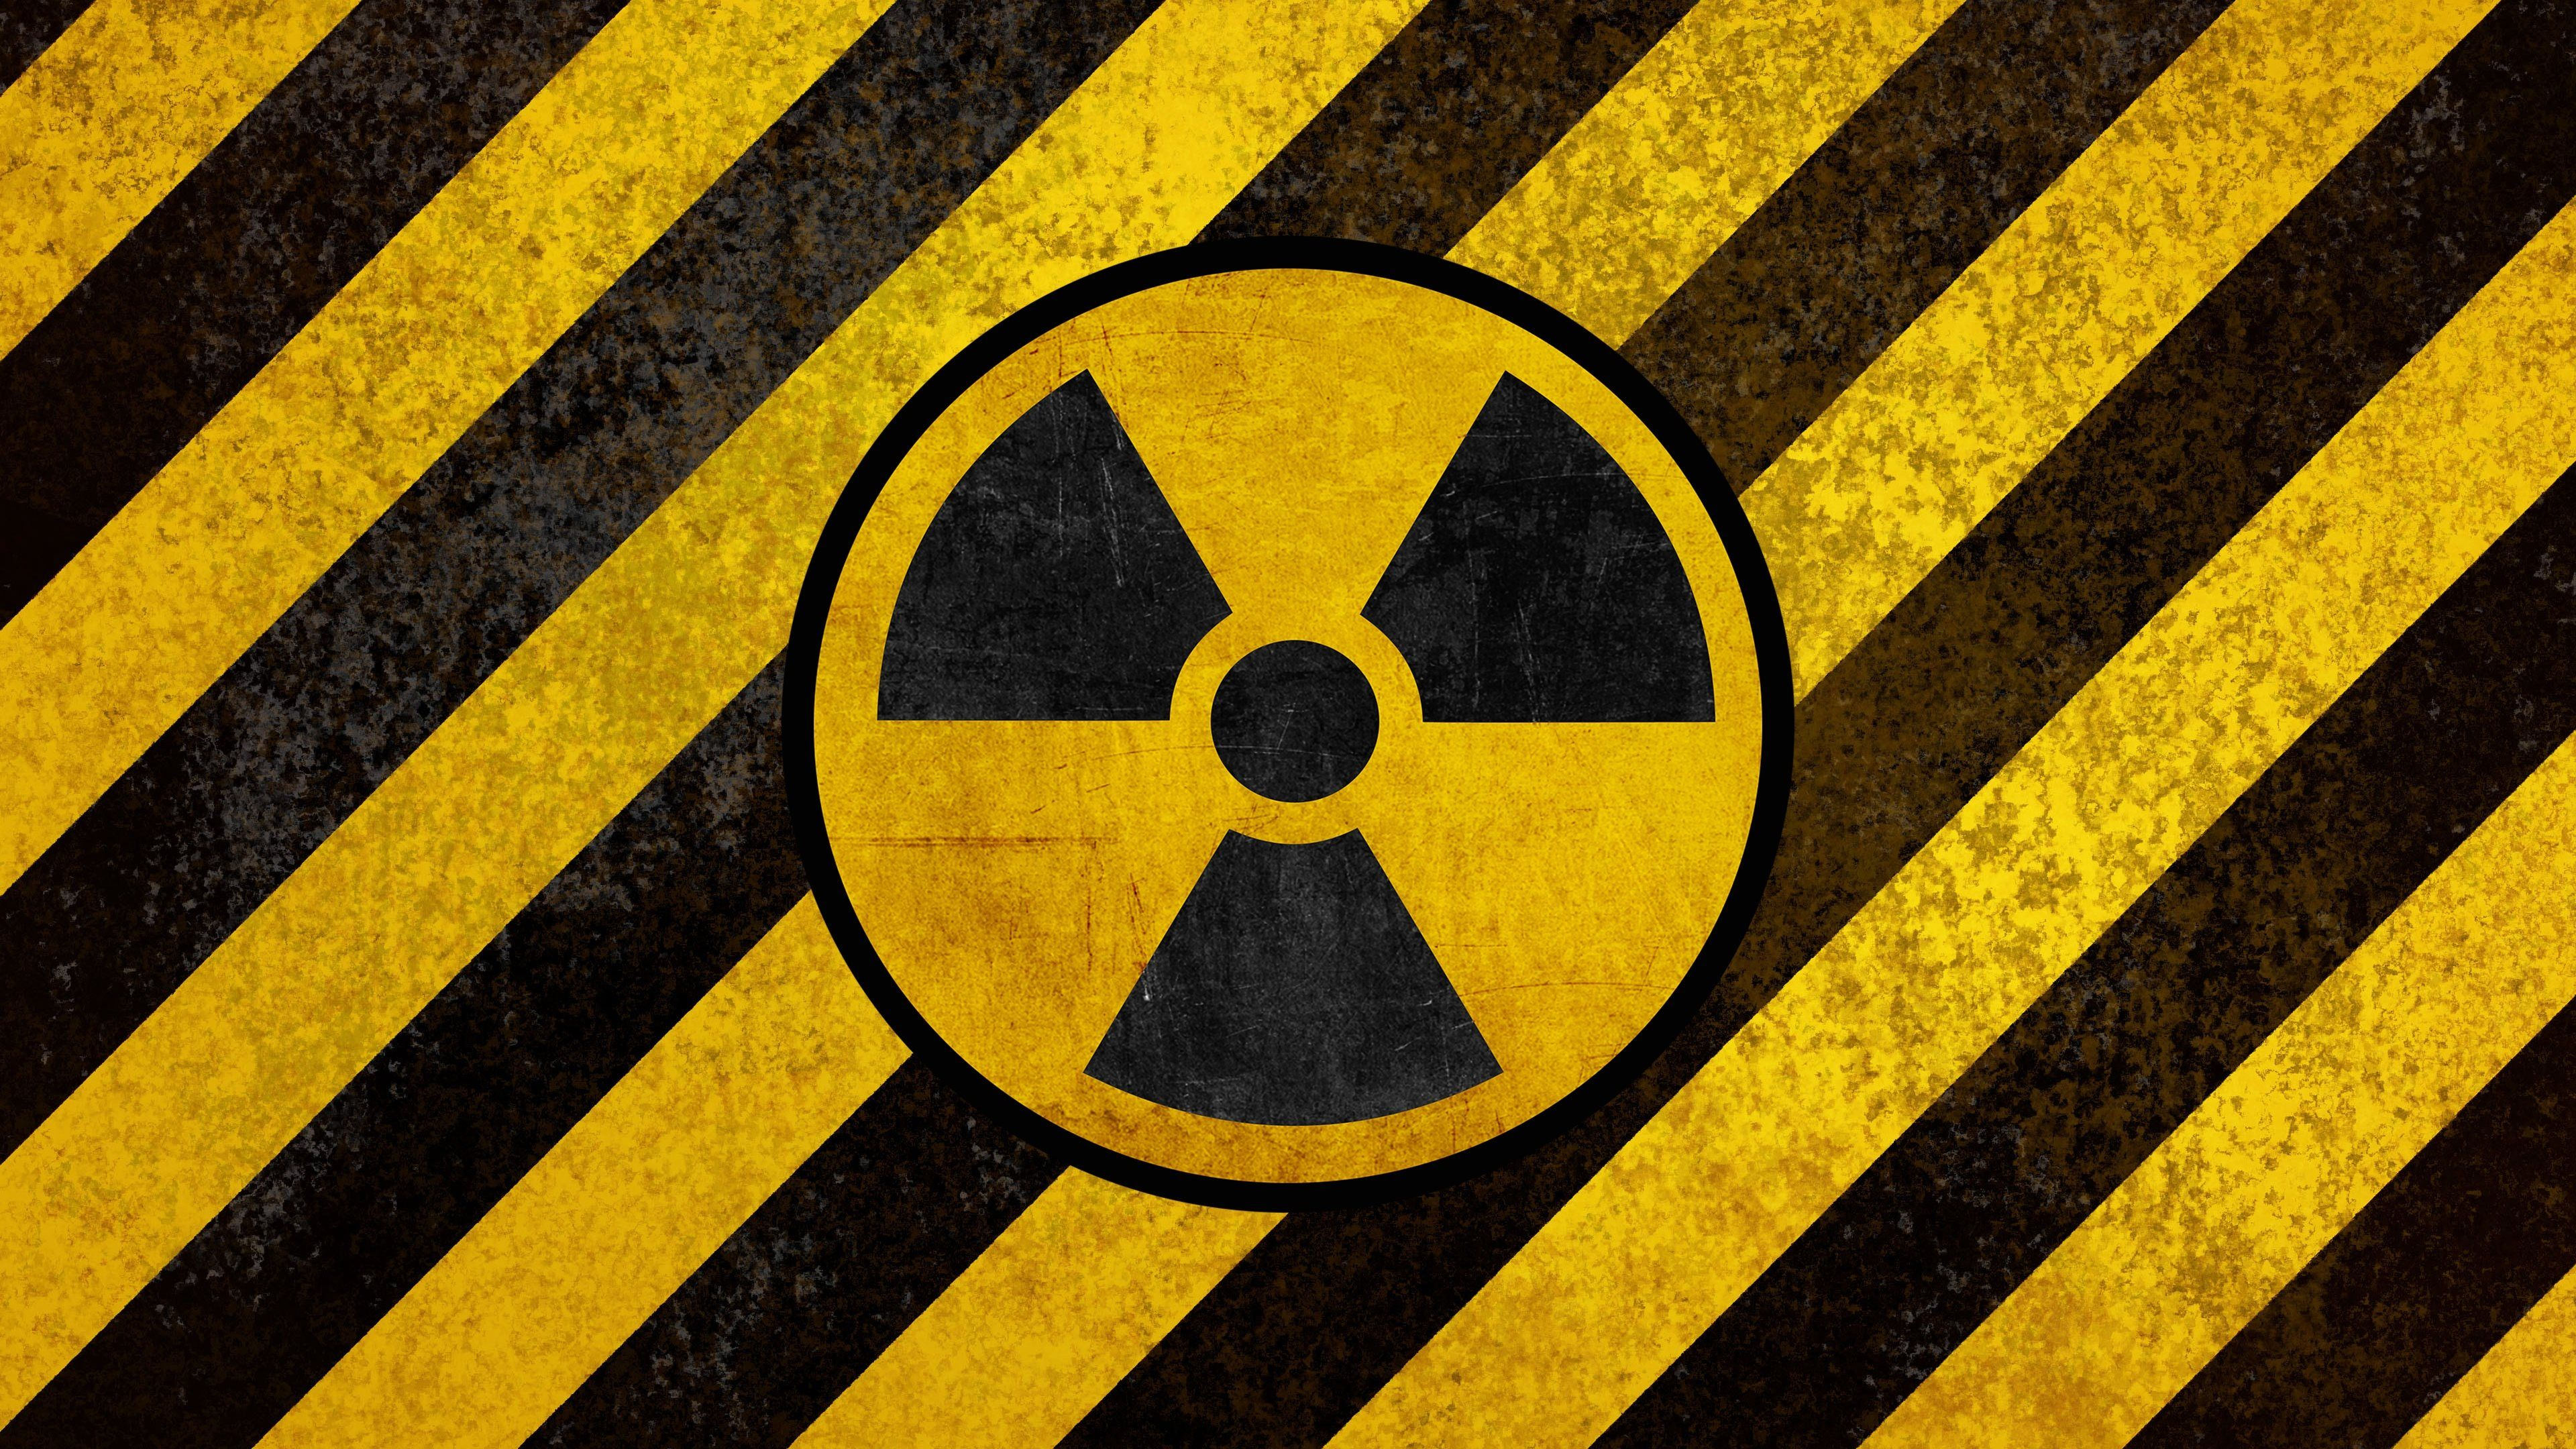 Warning Sign D and CG Abstract Background Wallpapers on